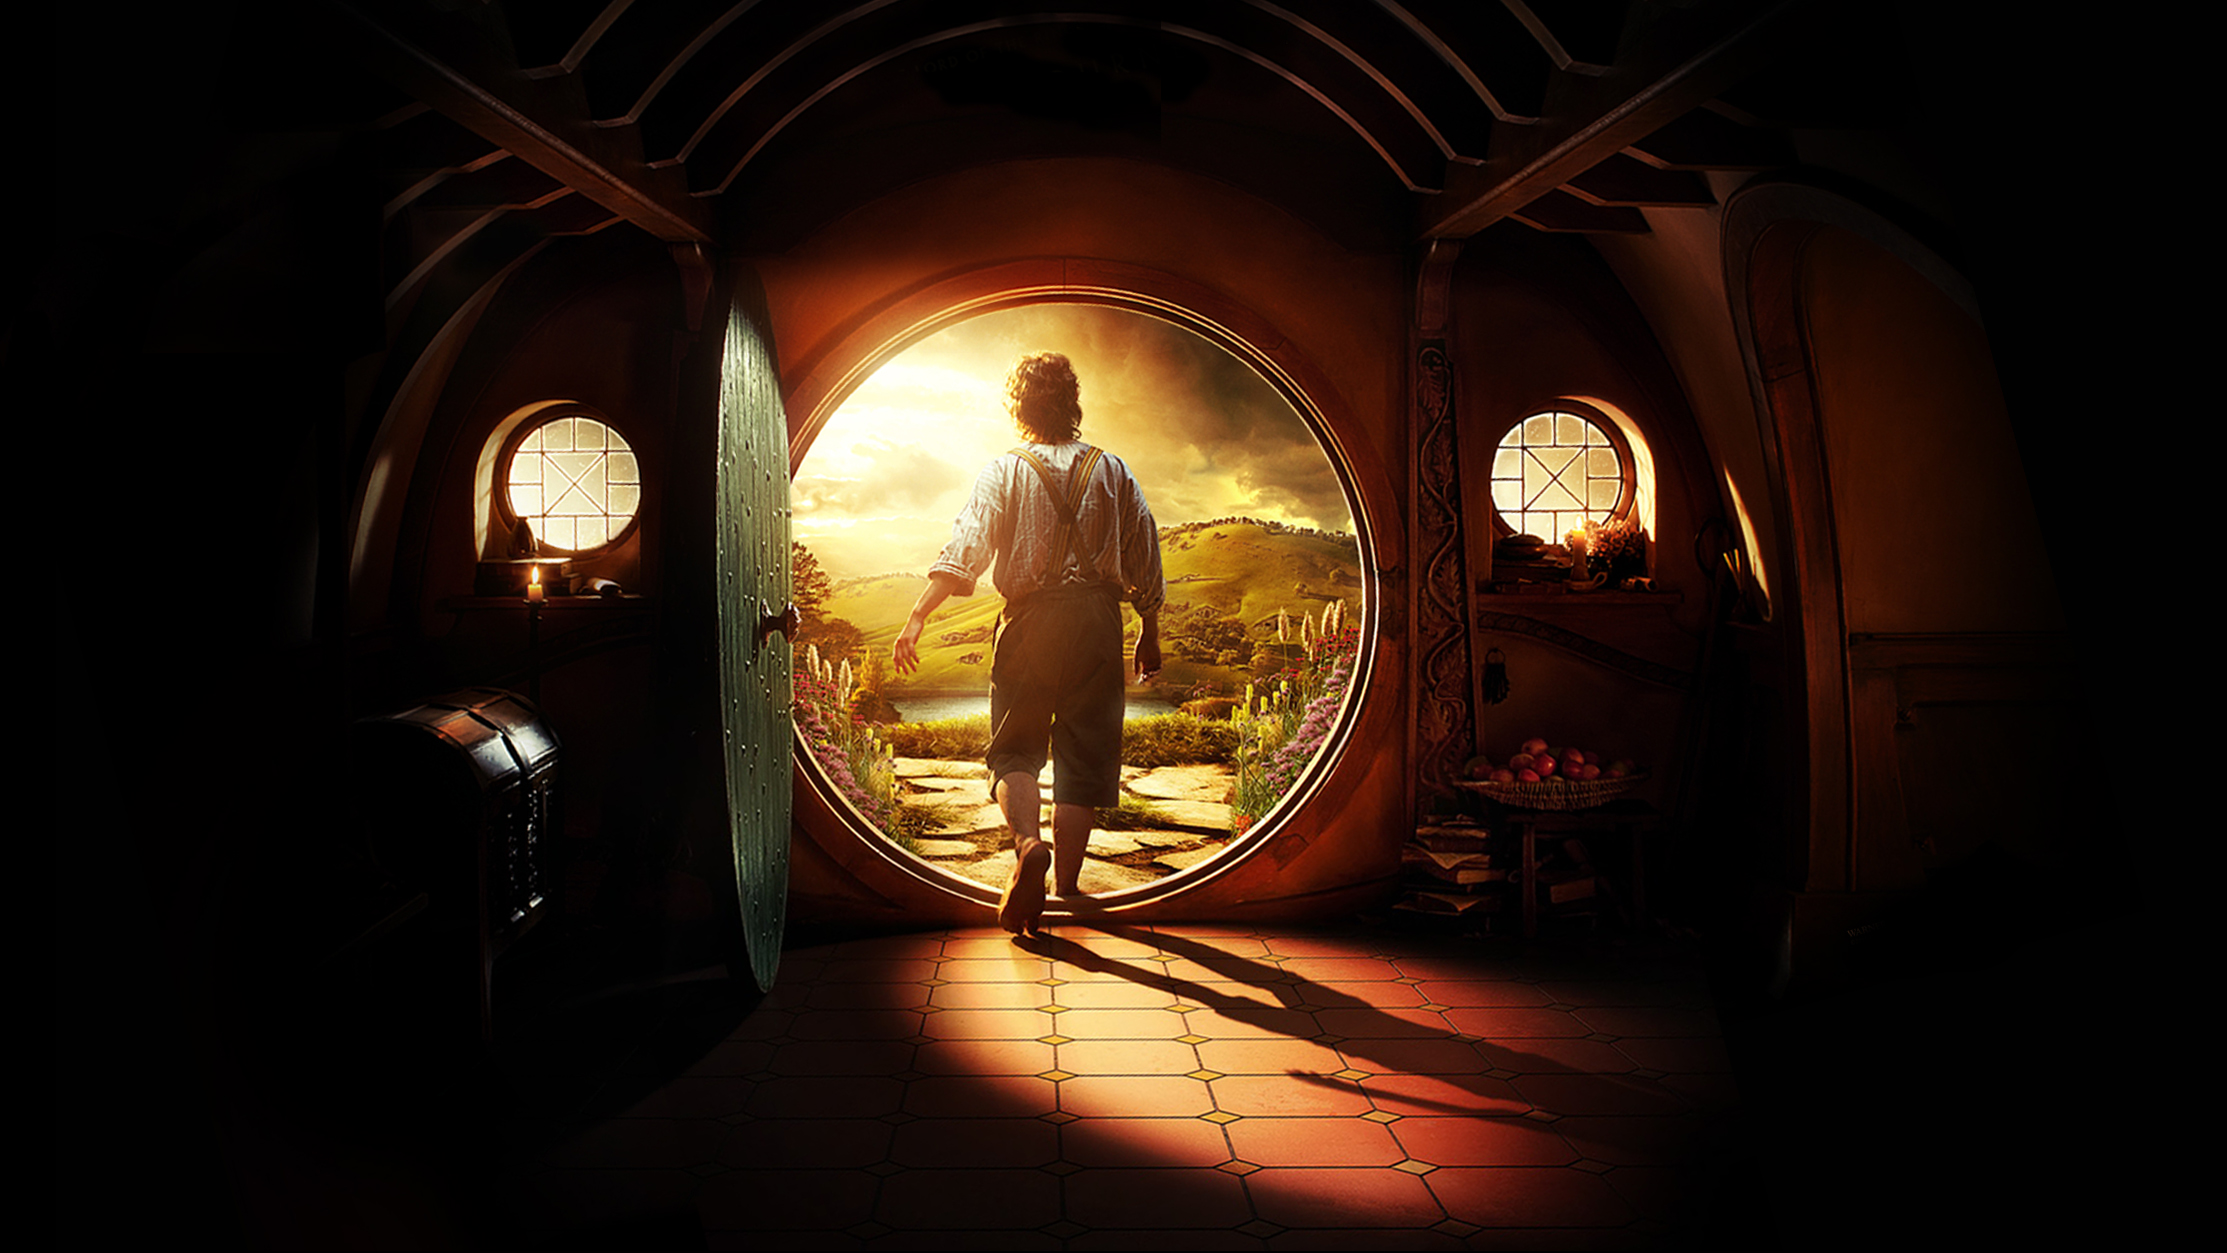 The Hobbit Movie Wallpapers Awesome Wallpapers 2227x1253